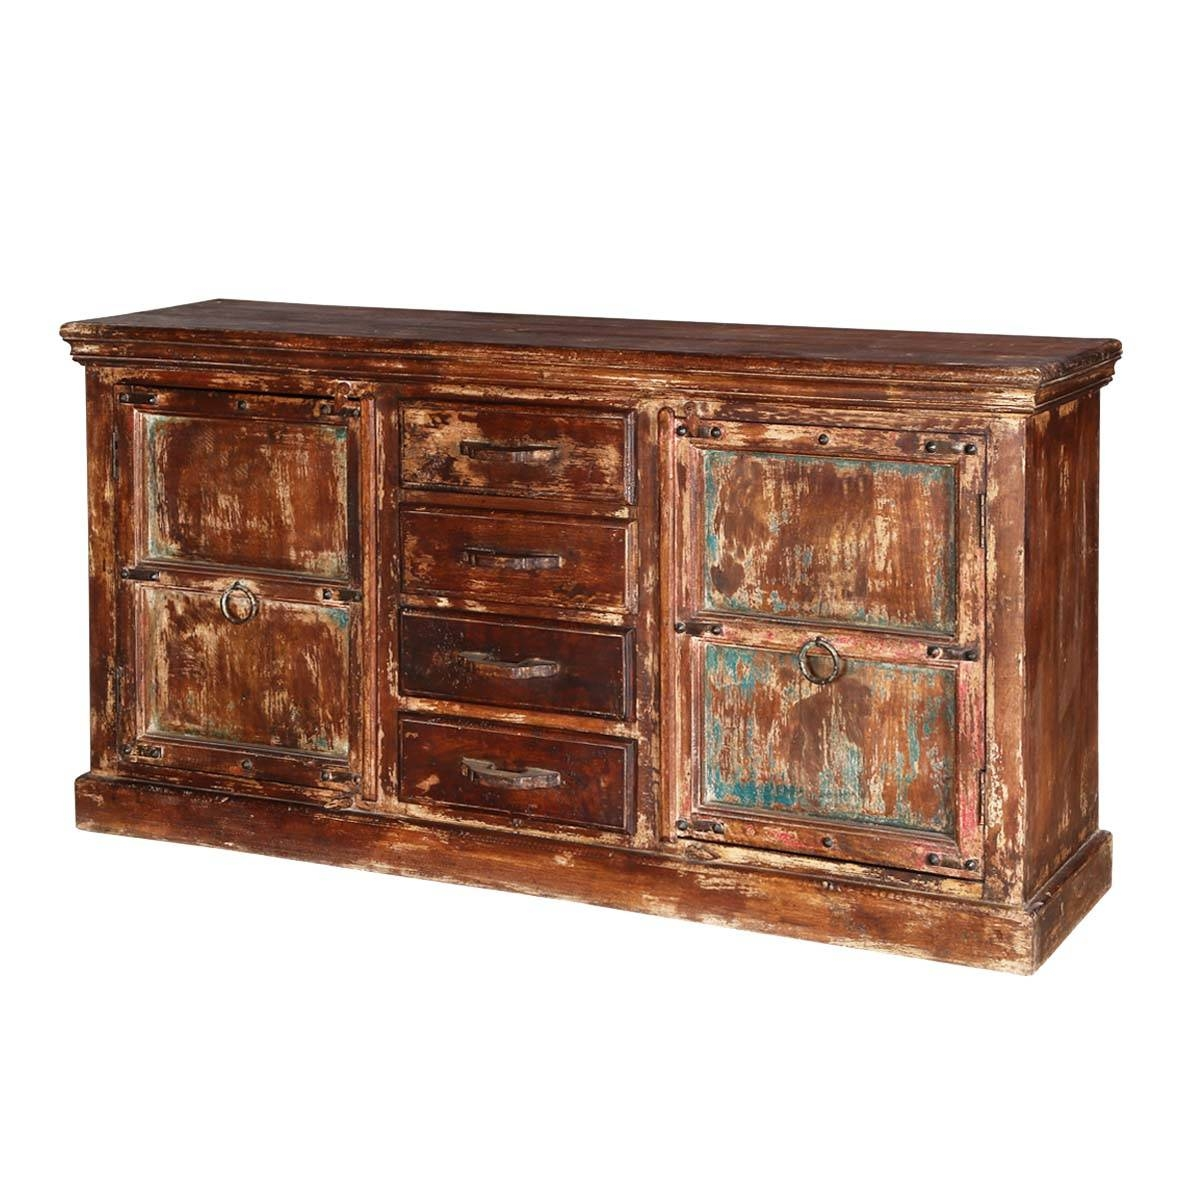 Inspiration about Rustic Reclaimed Wood 2 Door 4 Drawer Accent Sideboard Cabinet Pertaining To Most Popular Reclaimed Wood Sideboards (#14 of 15)